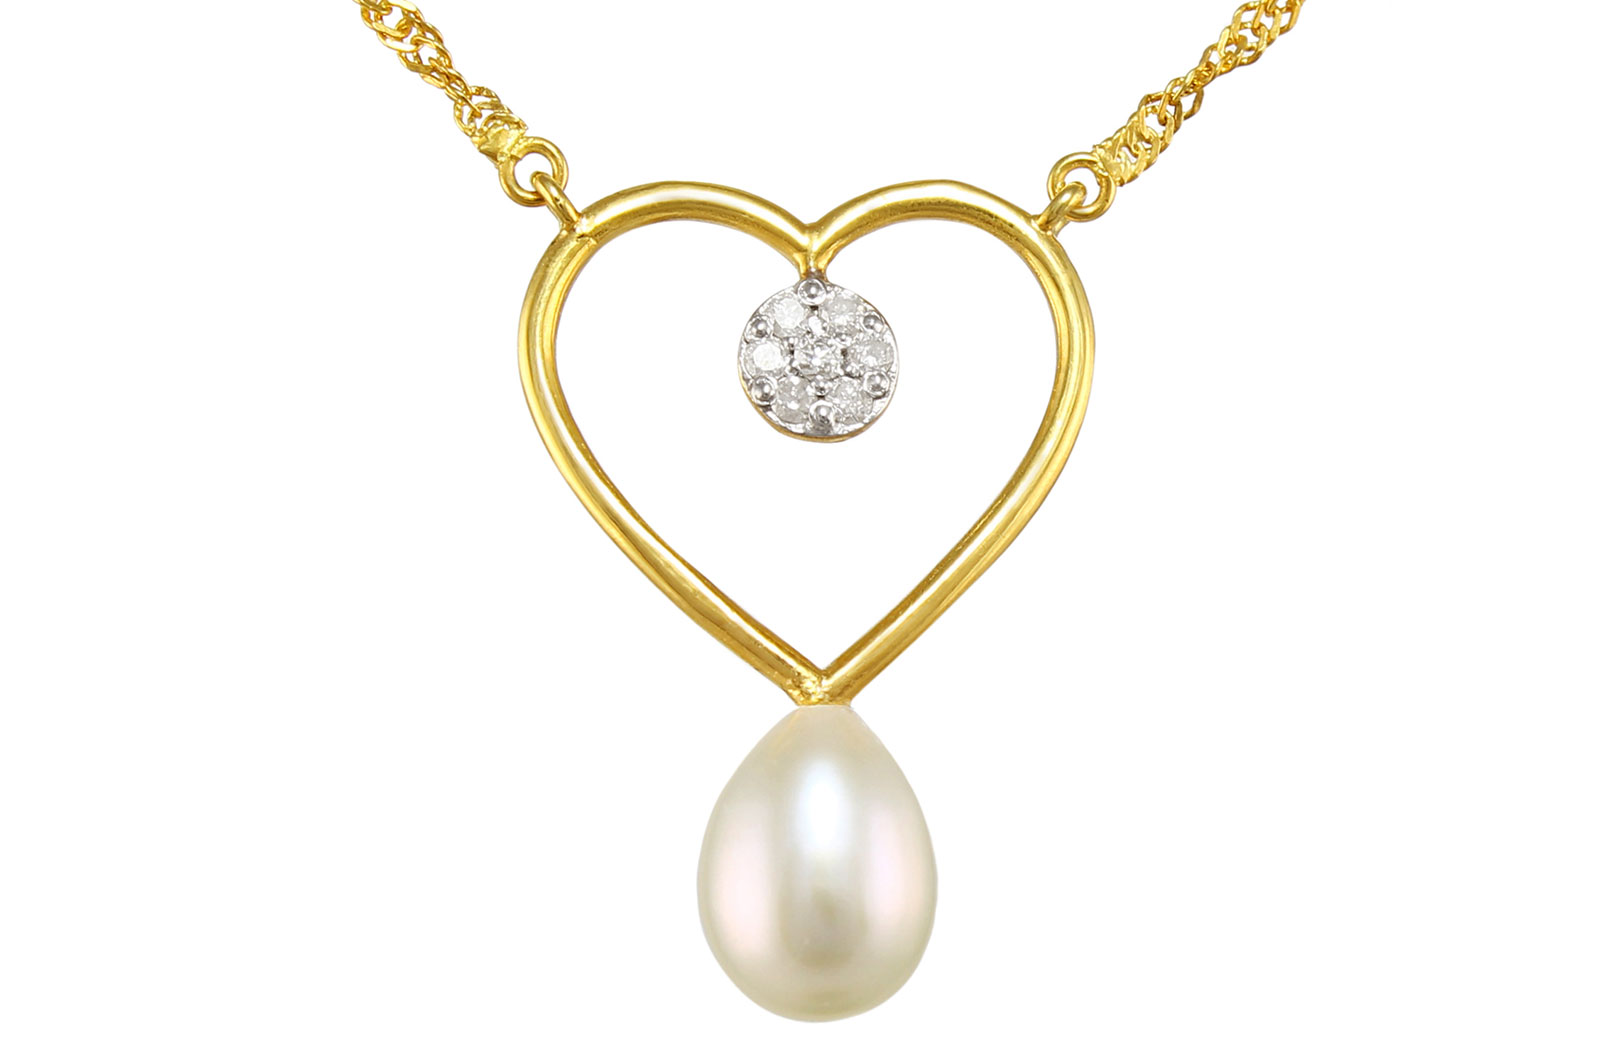 Vera Perla 18K Solid Gold, 0.07Cts Diamonds and 7mm Pearl  Heart Solitaire Necklace